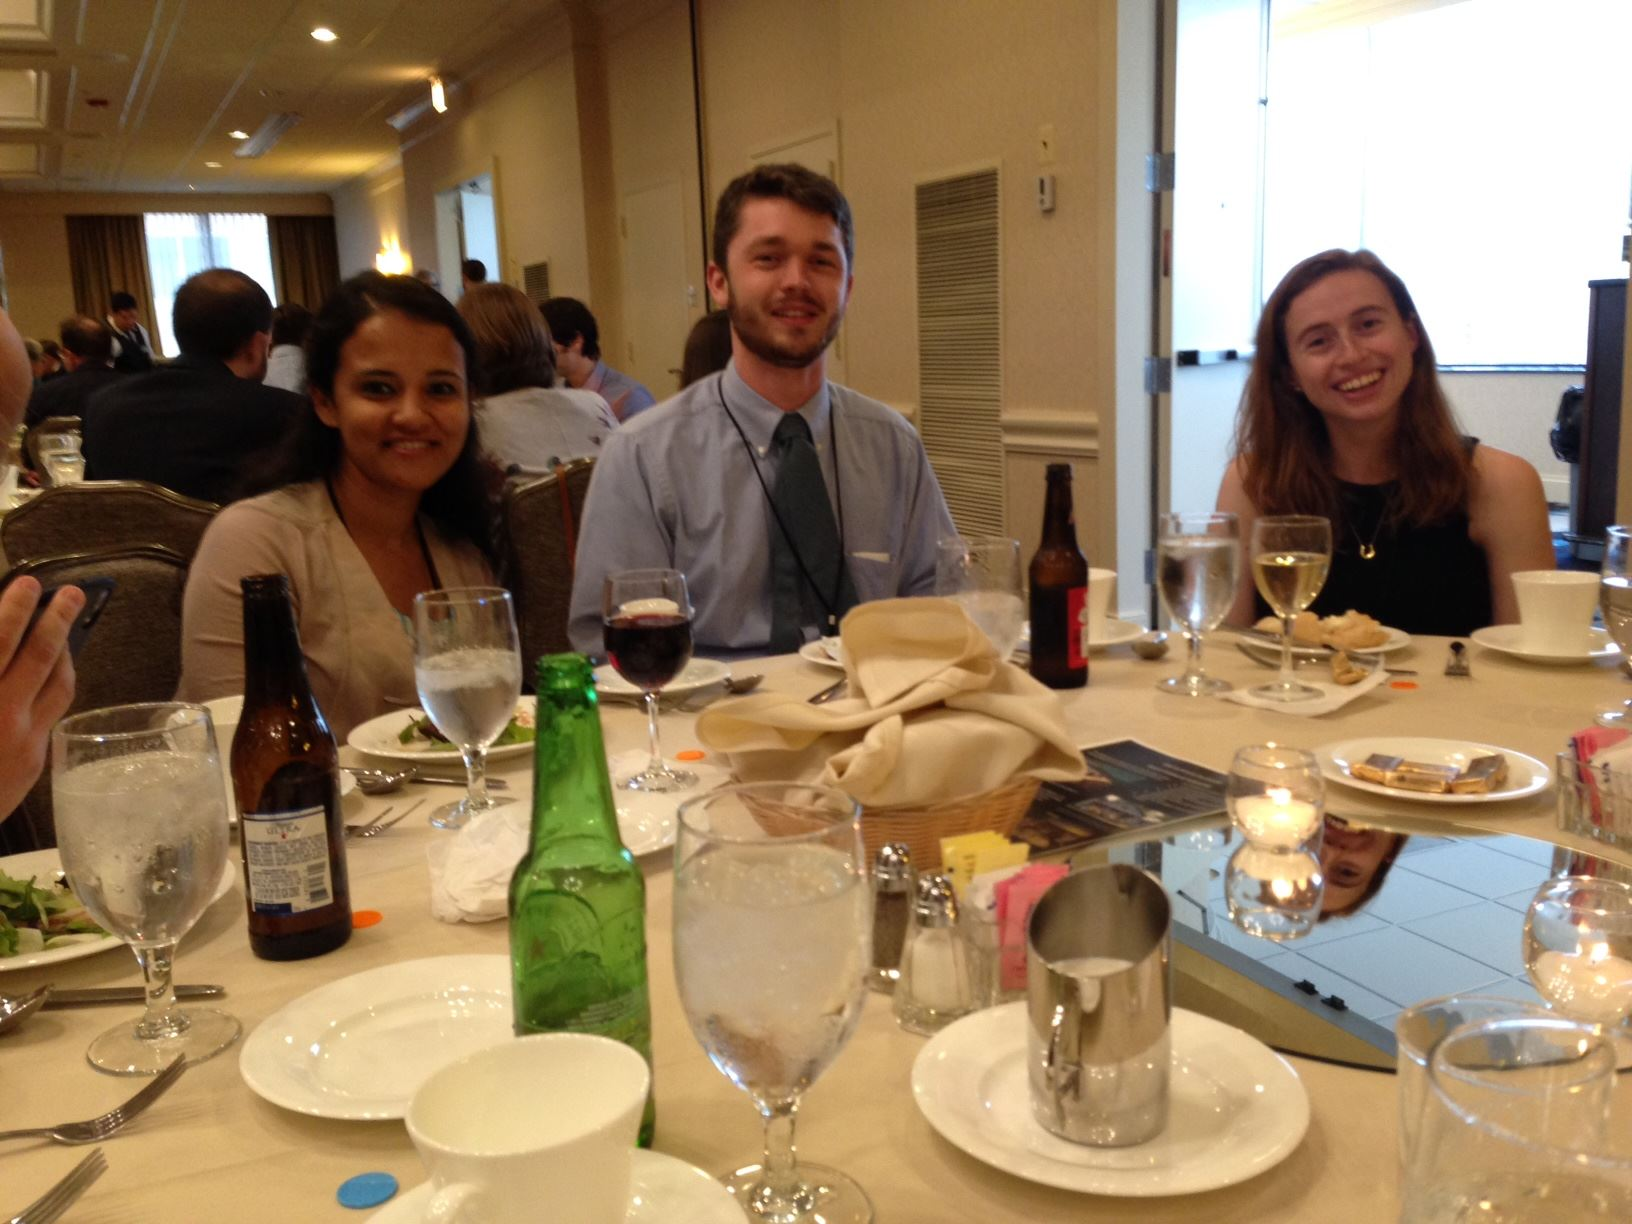 Rucha Kamath, Sam Biggers, and Dana Marks at the banquet